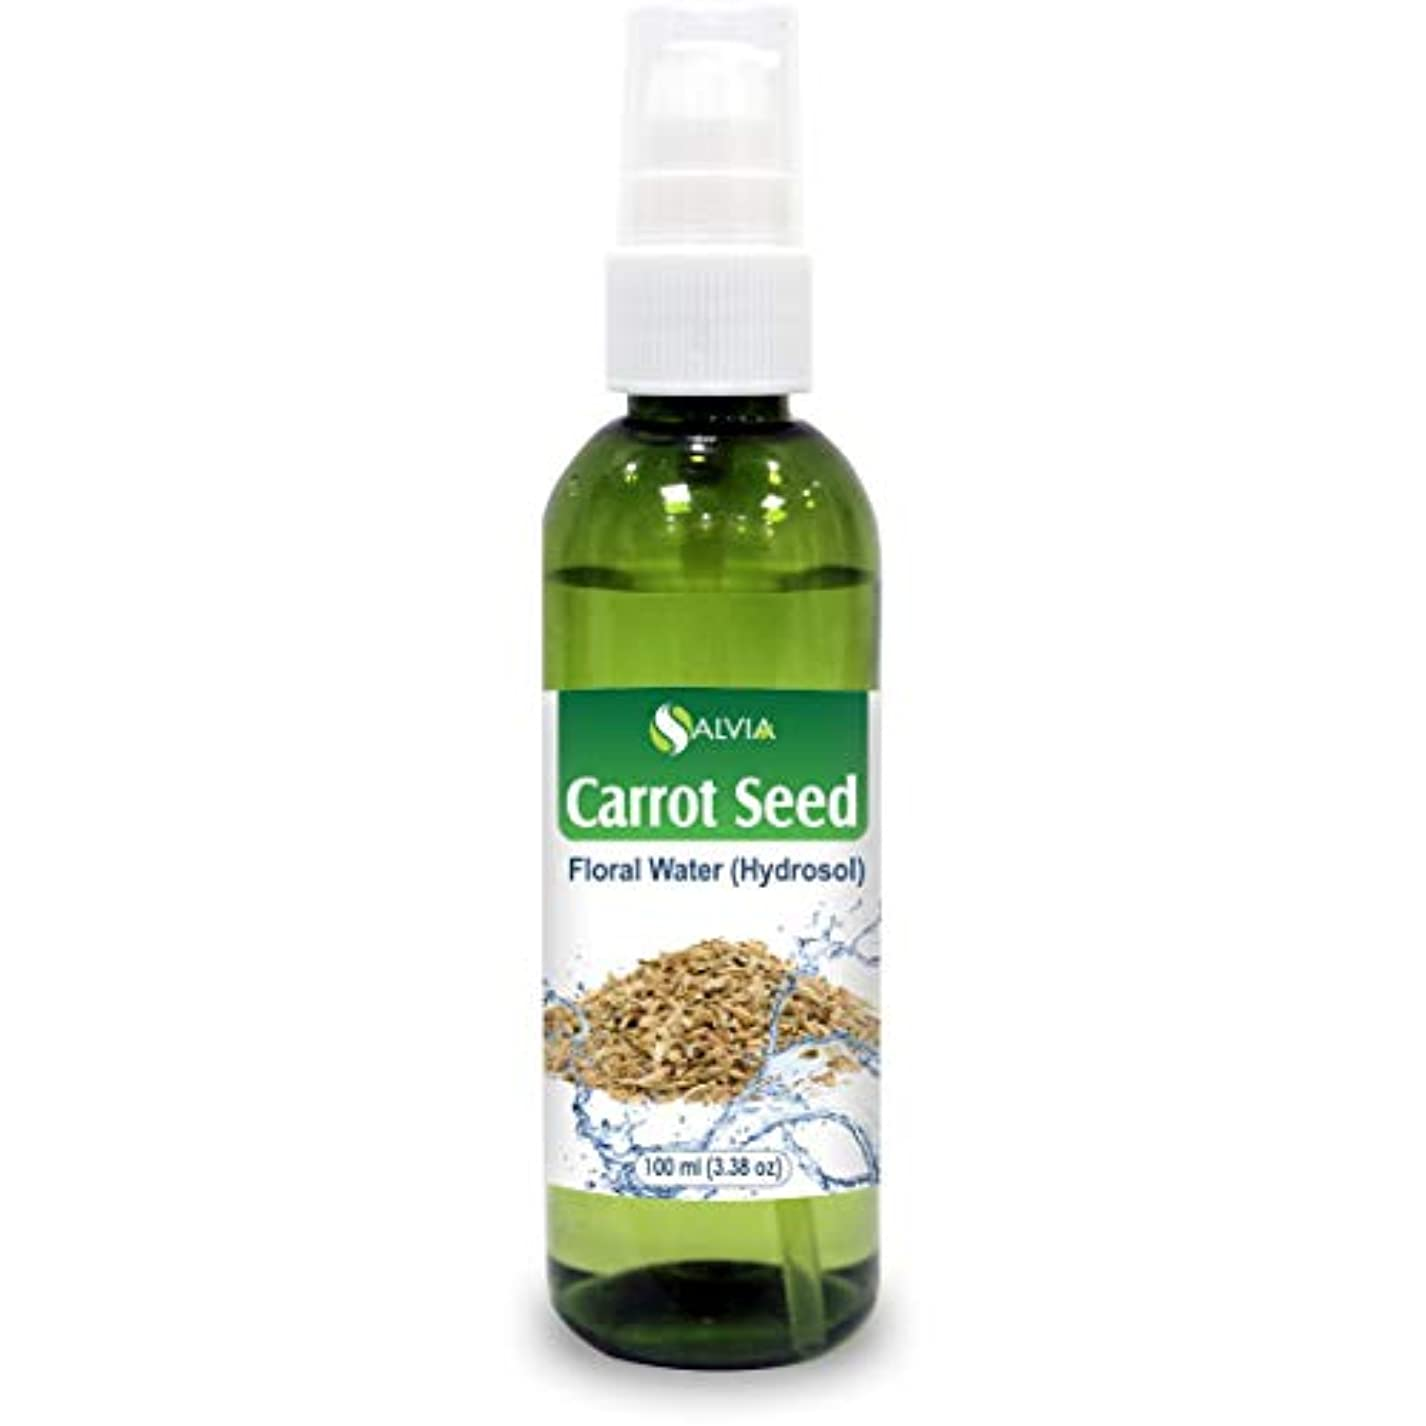 Carrot Seed Floral Water Floral Water 100ml (Hydrosol) 100% Pure And Natural